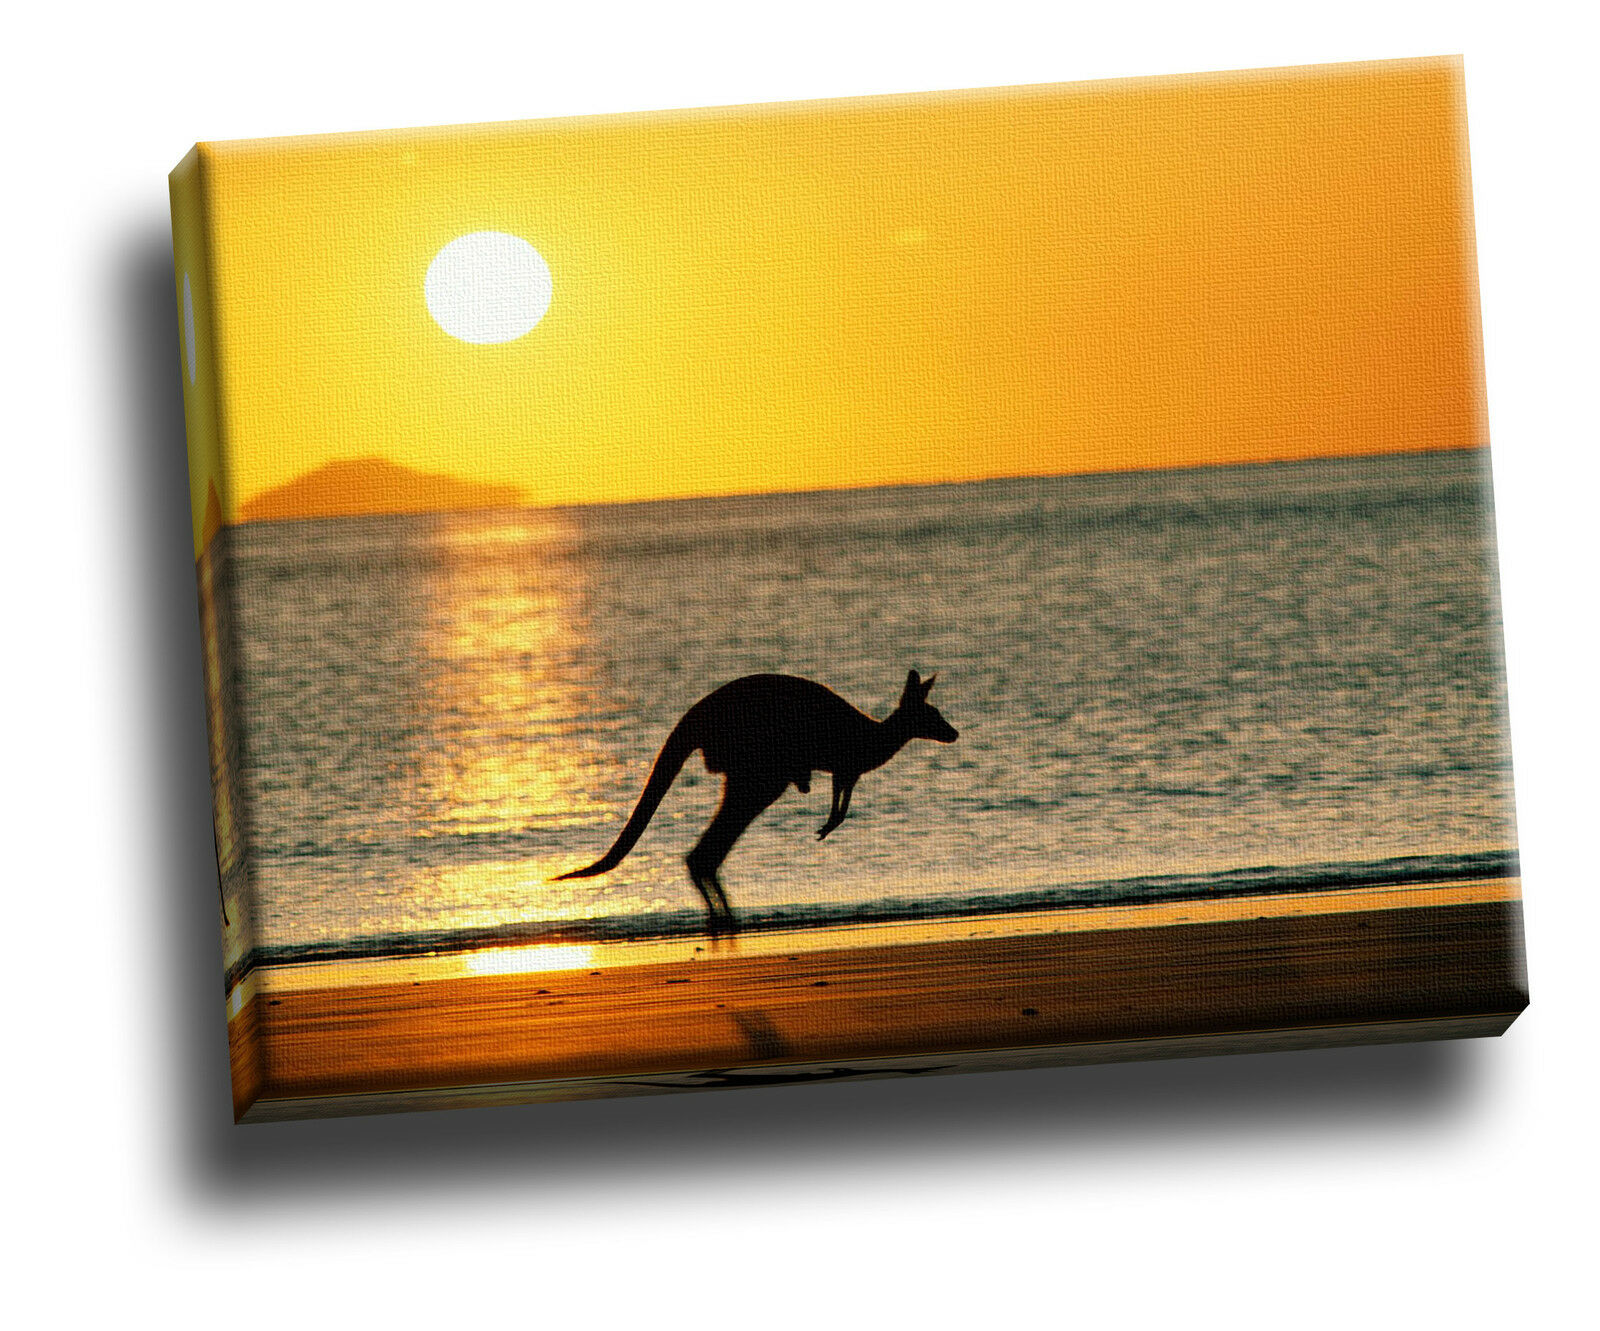 Taking Joey Home, Australia Giclee Canvas Picture Wall Art